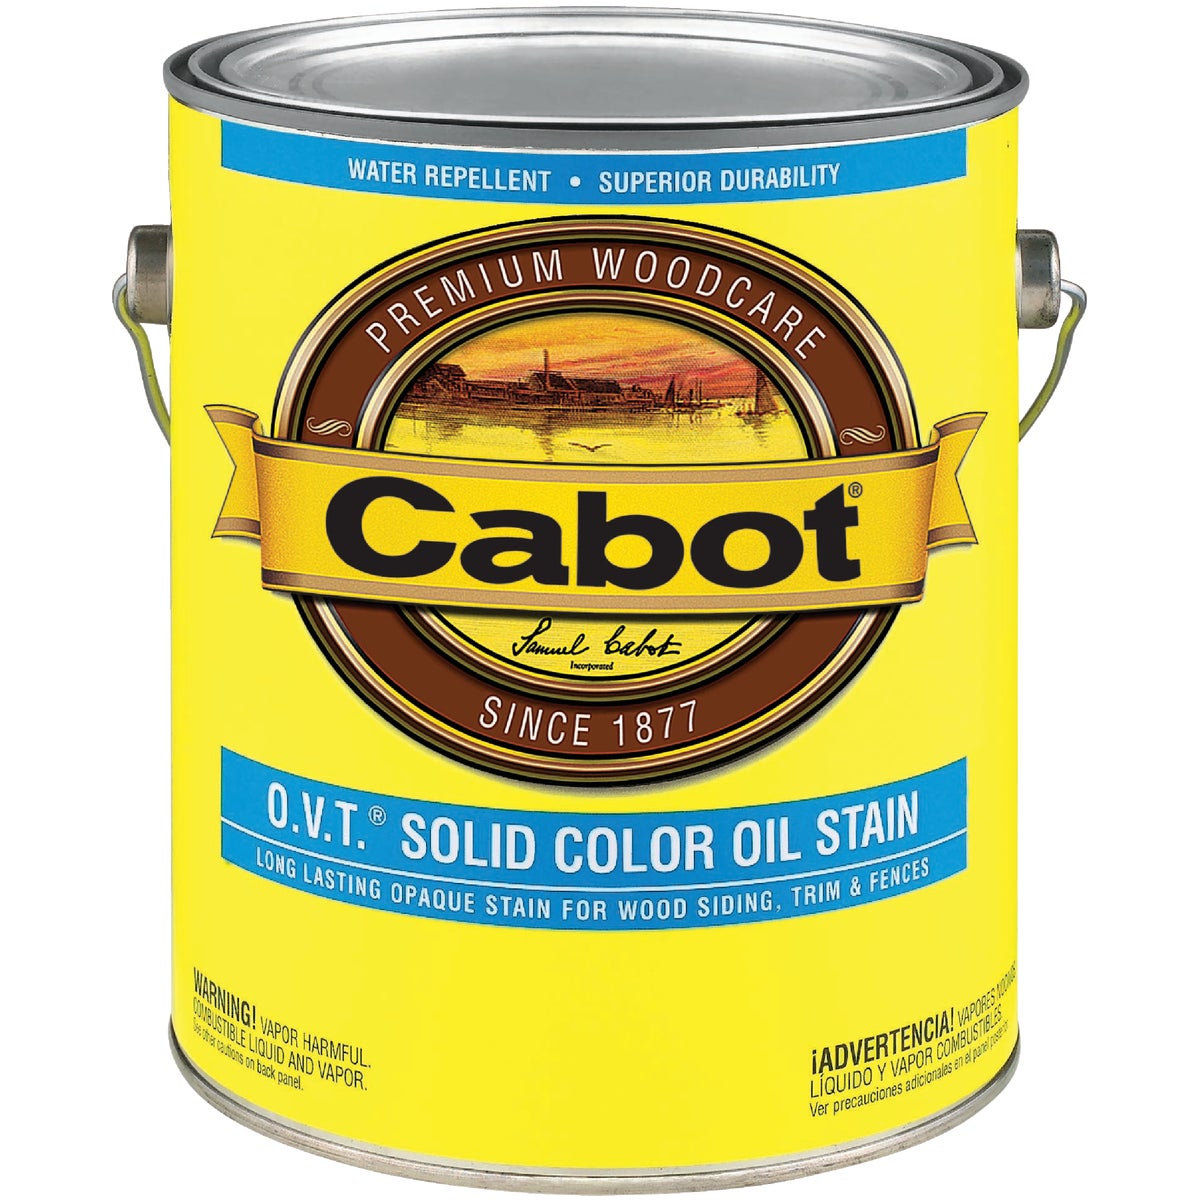 DEEP BS OVT SOLID STAIN - 140.0006507.007 by Valspar Corp